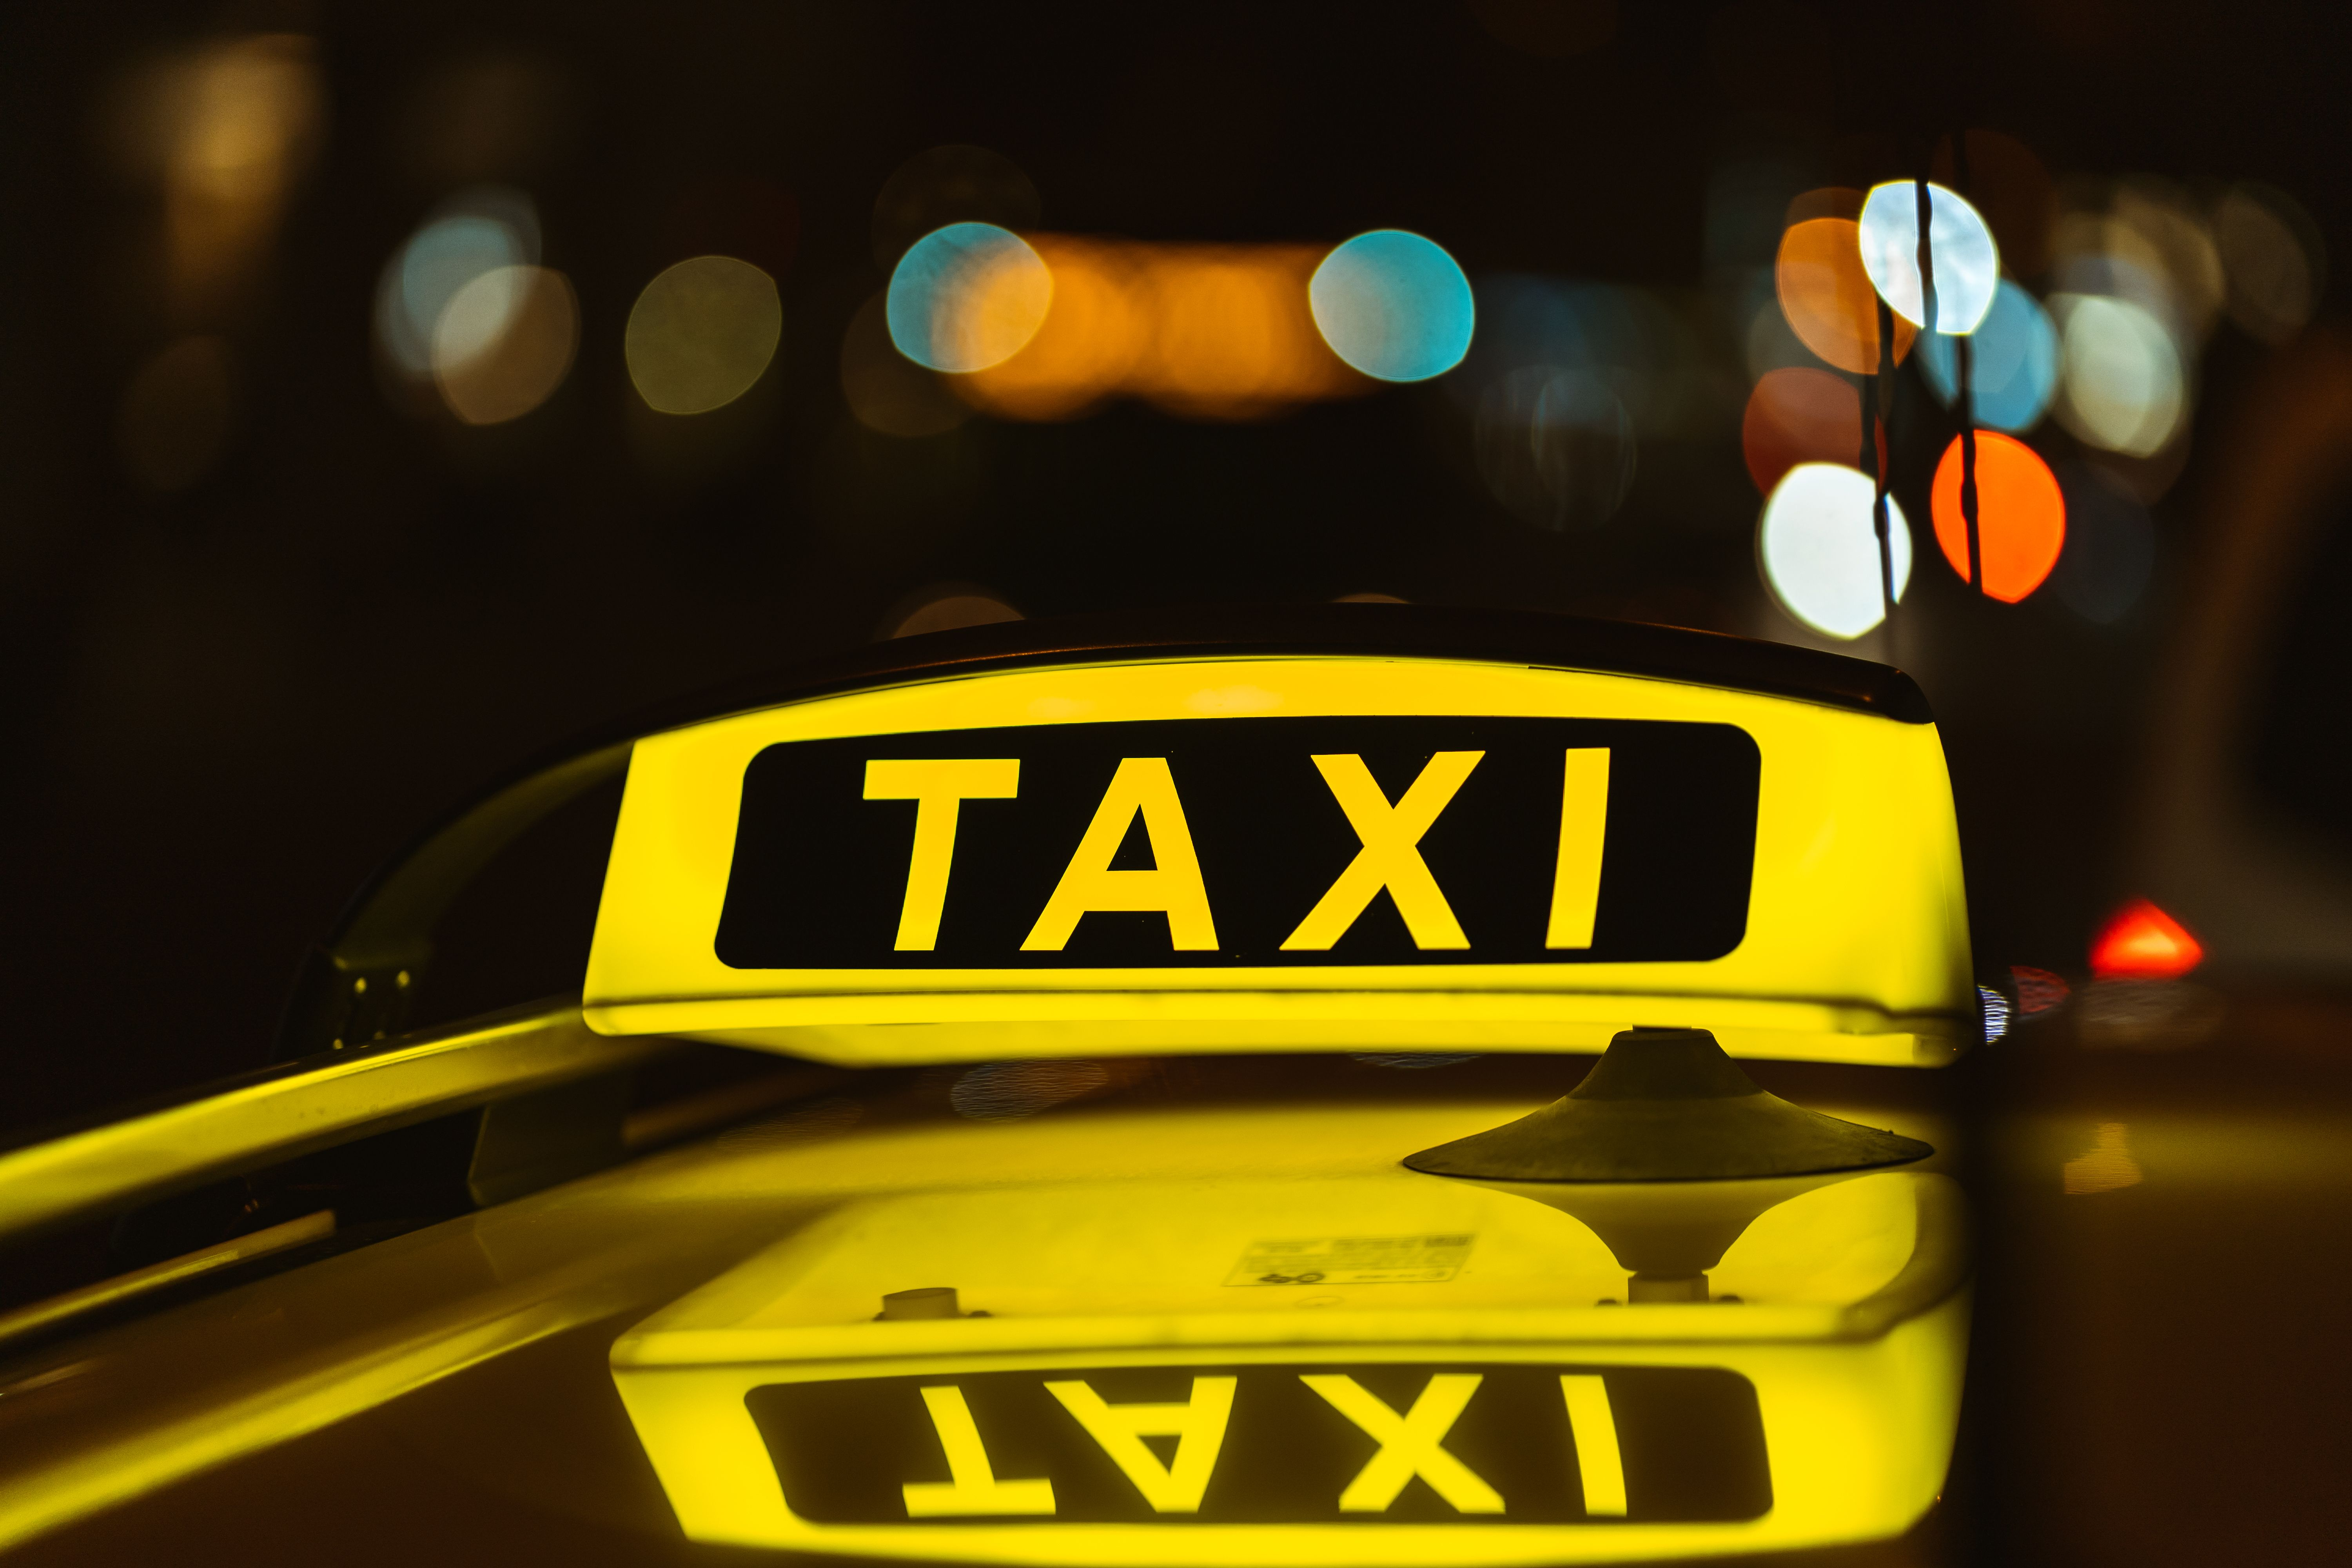 Free Cab Rides On New Year S Eve Rainwater Holt Sexton